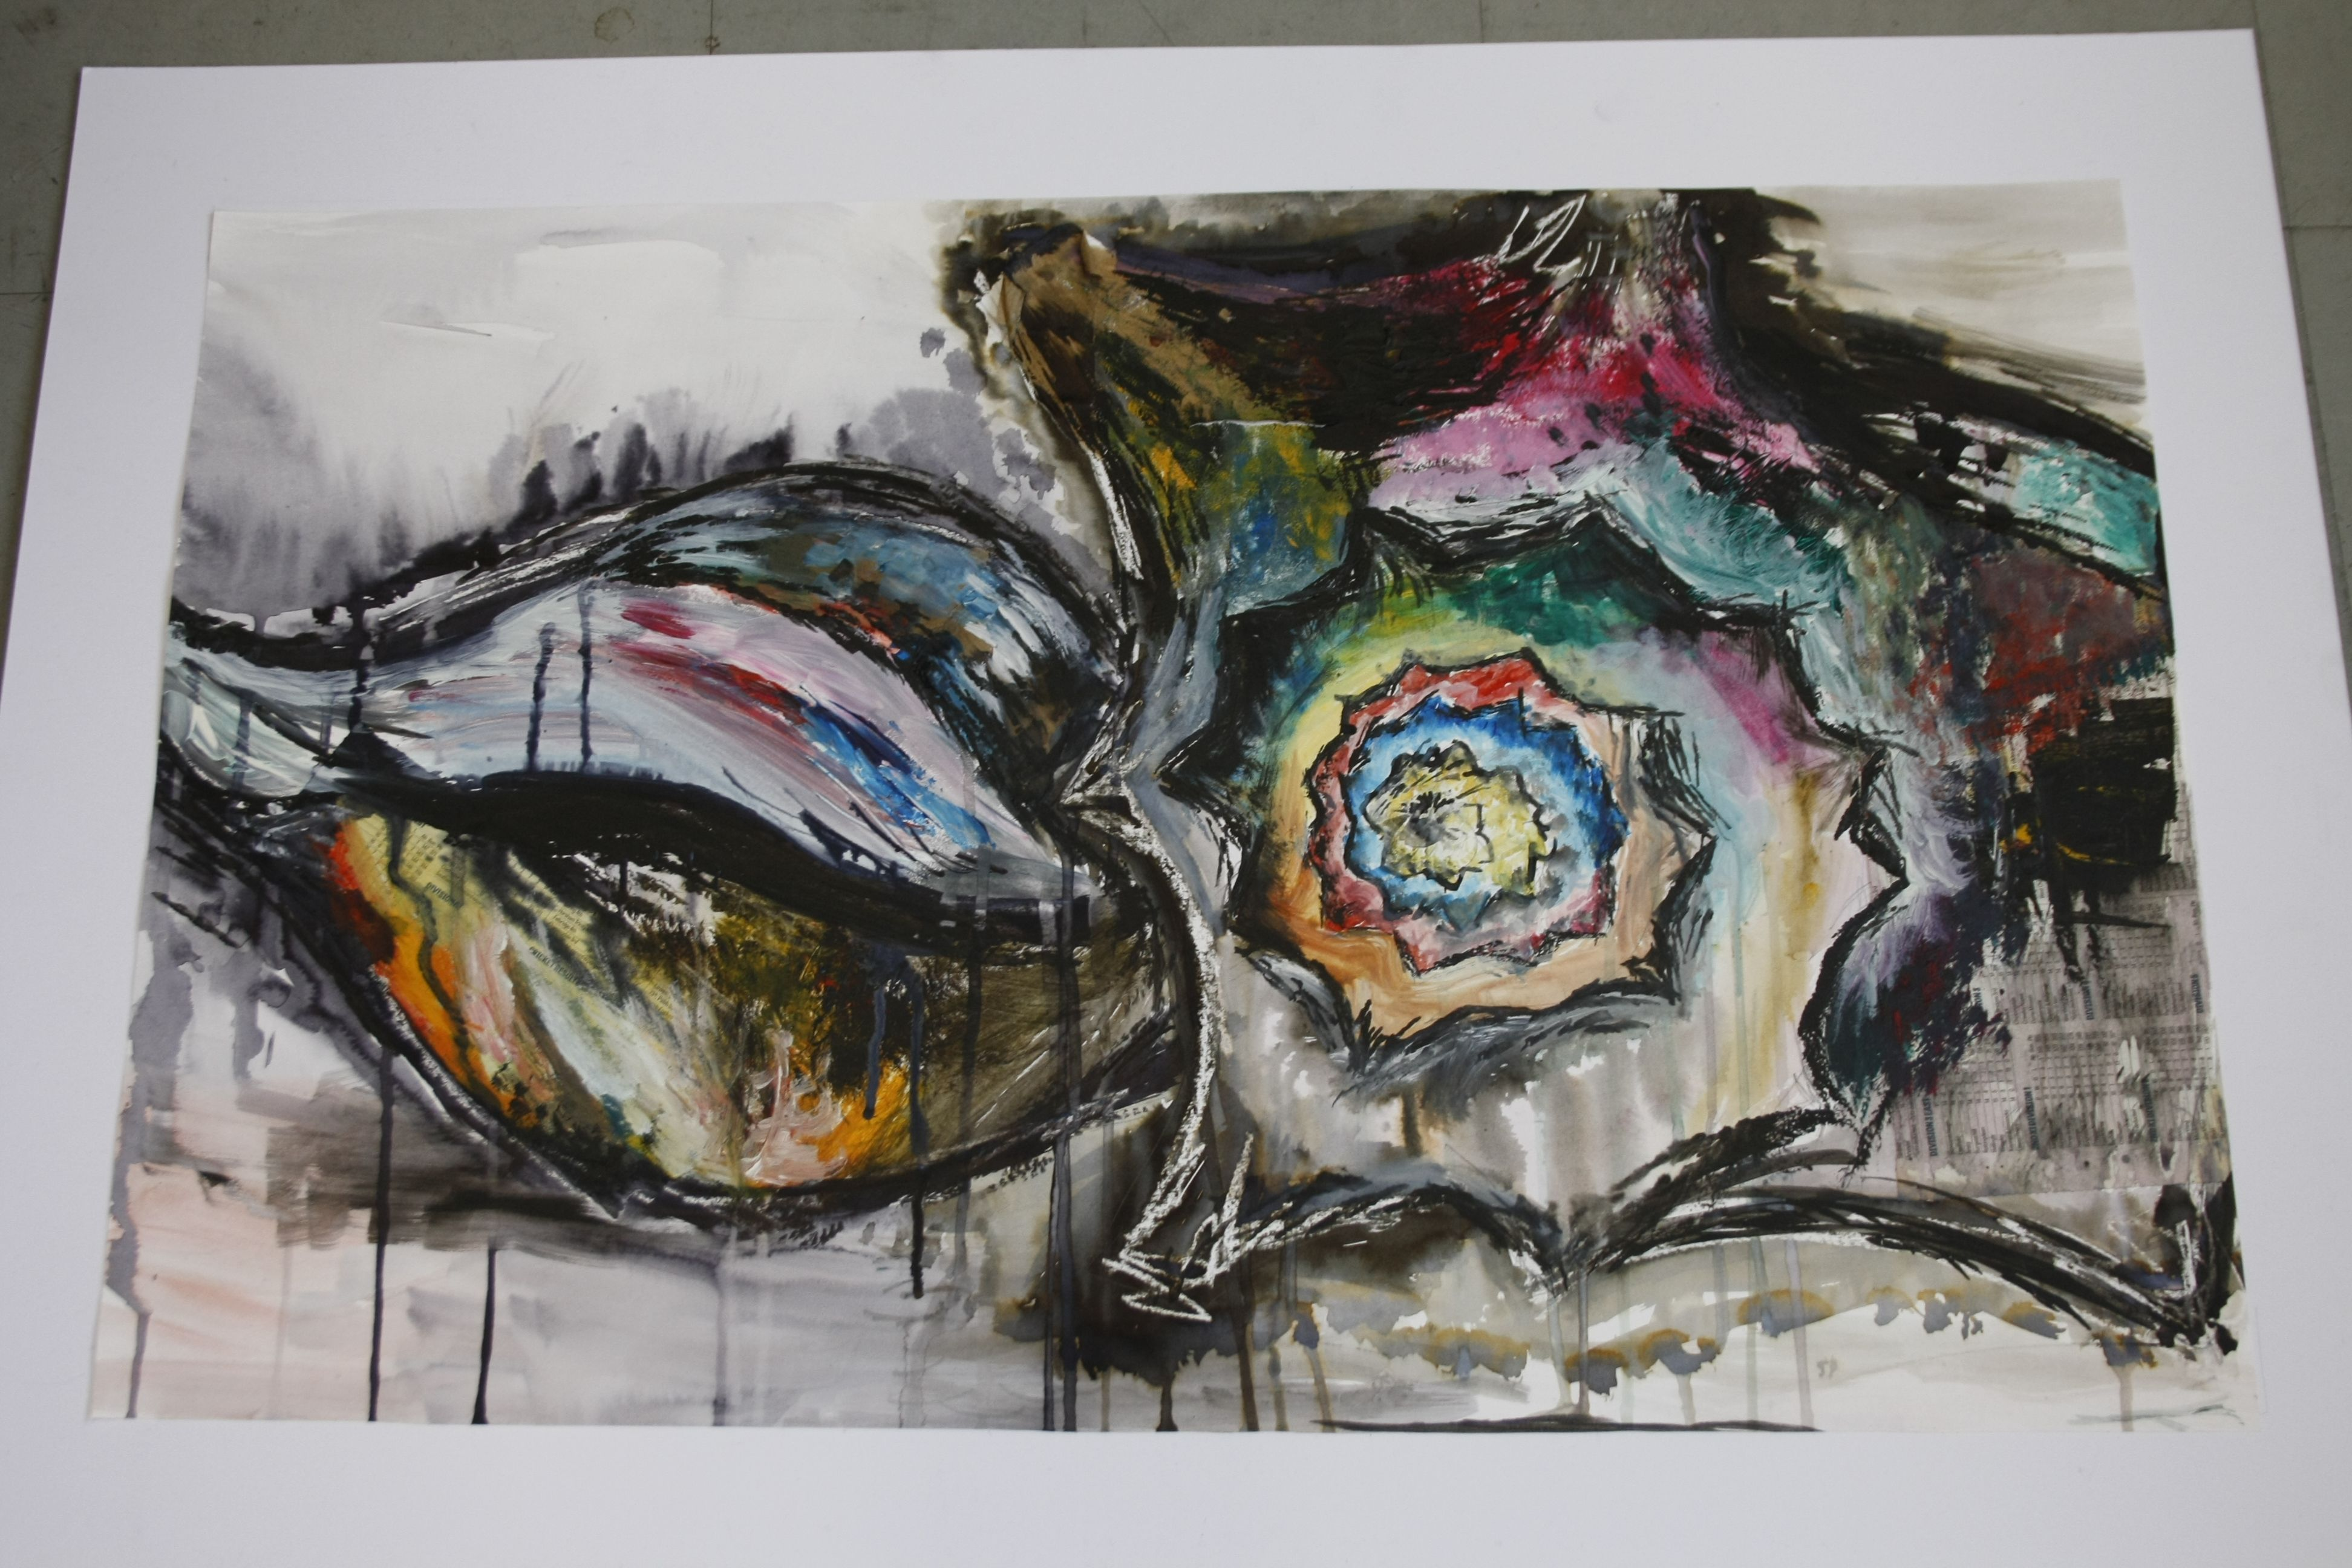 my final piece for our first drawing project  abstract  experimental mixed media shells using ink